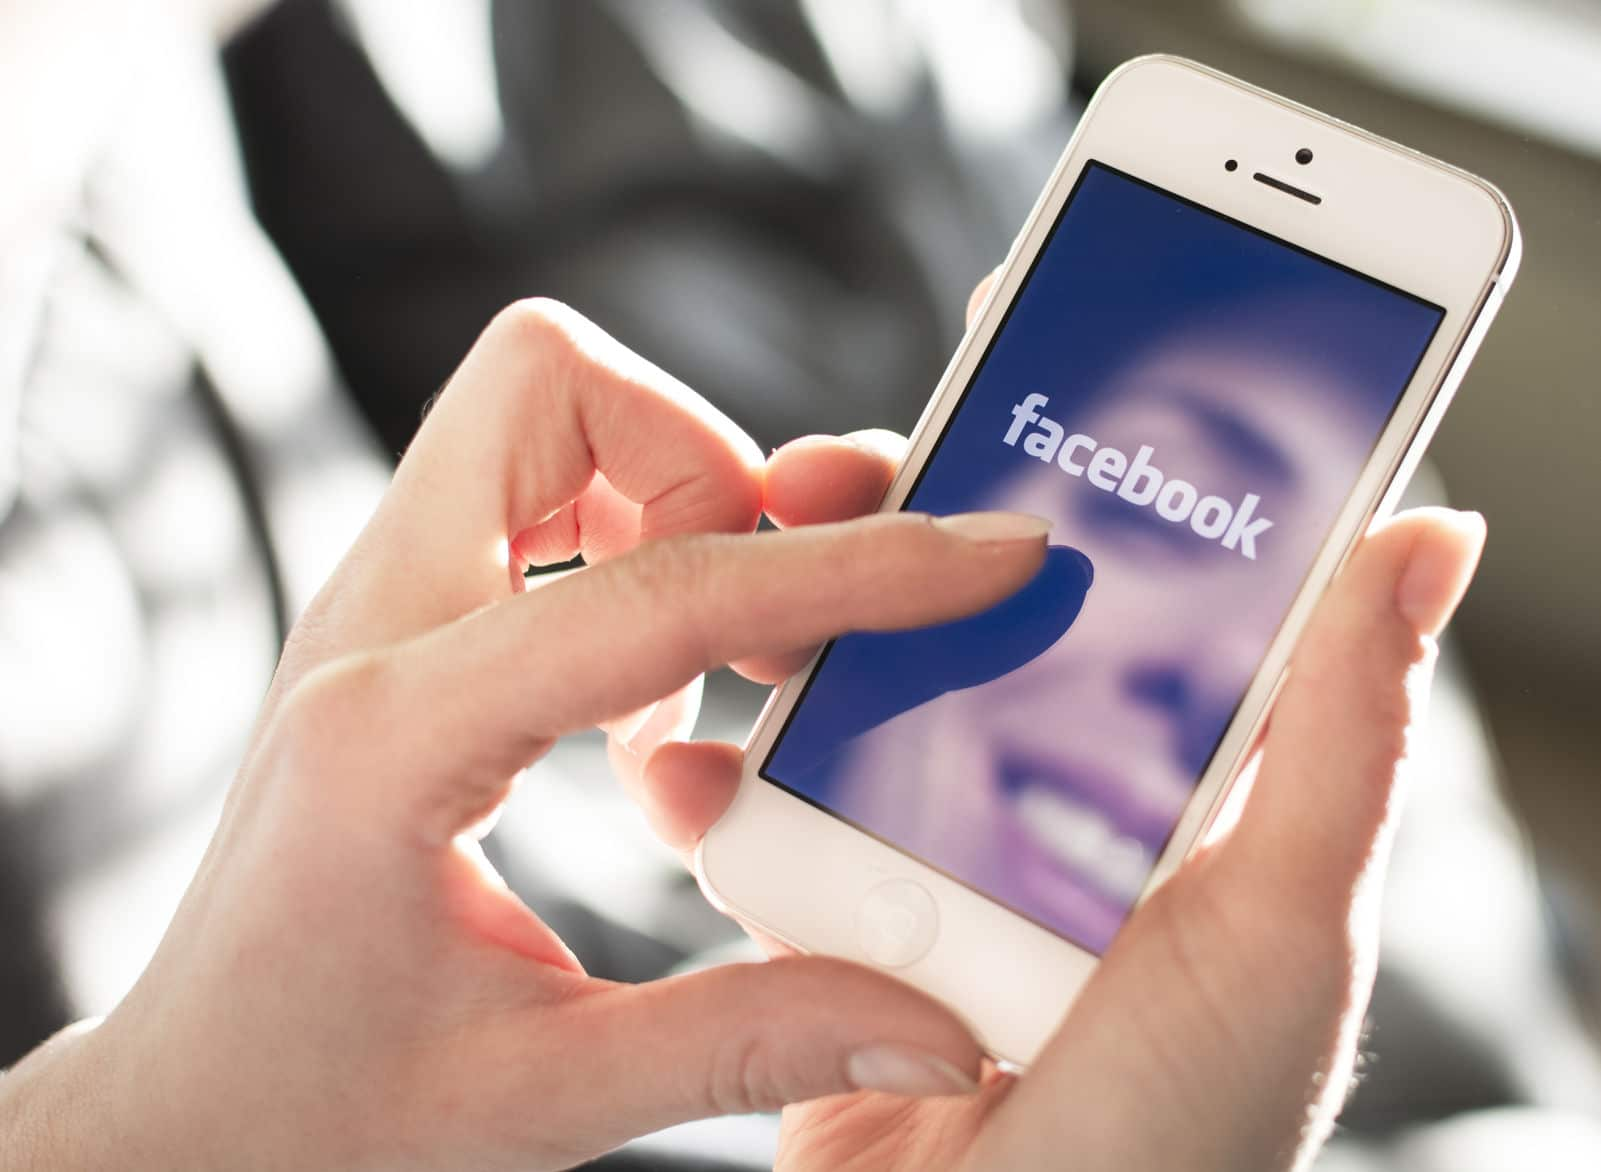 Letting go of social media accounts like Facebook will help you live a more meaningful life.